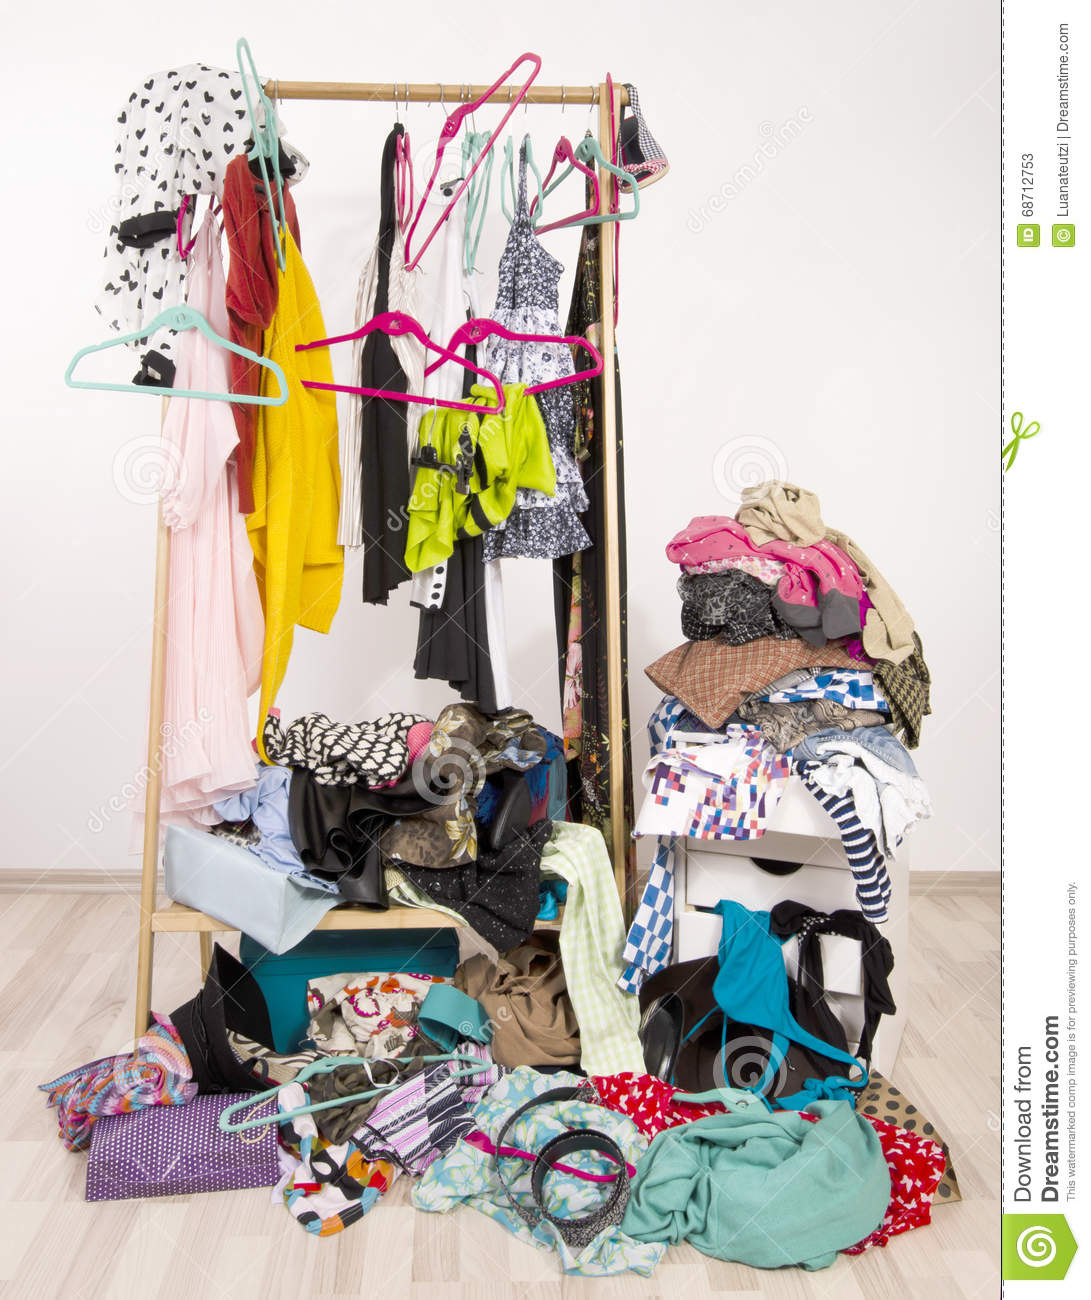 Colorful Mess Room: A Pile Of Colorful Clothes On The Floor Royalty-Free Stock